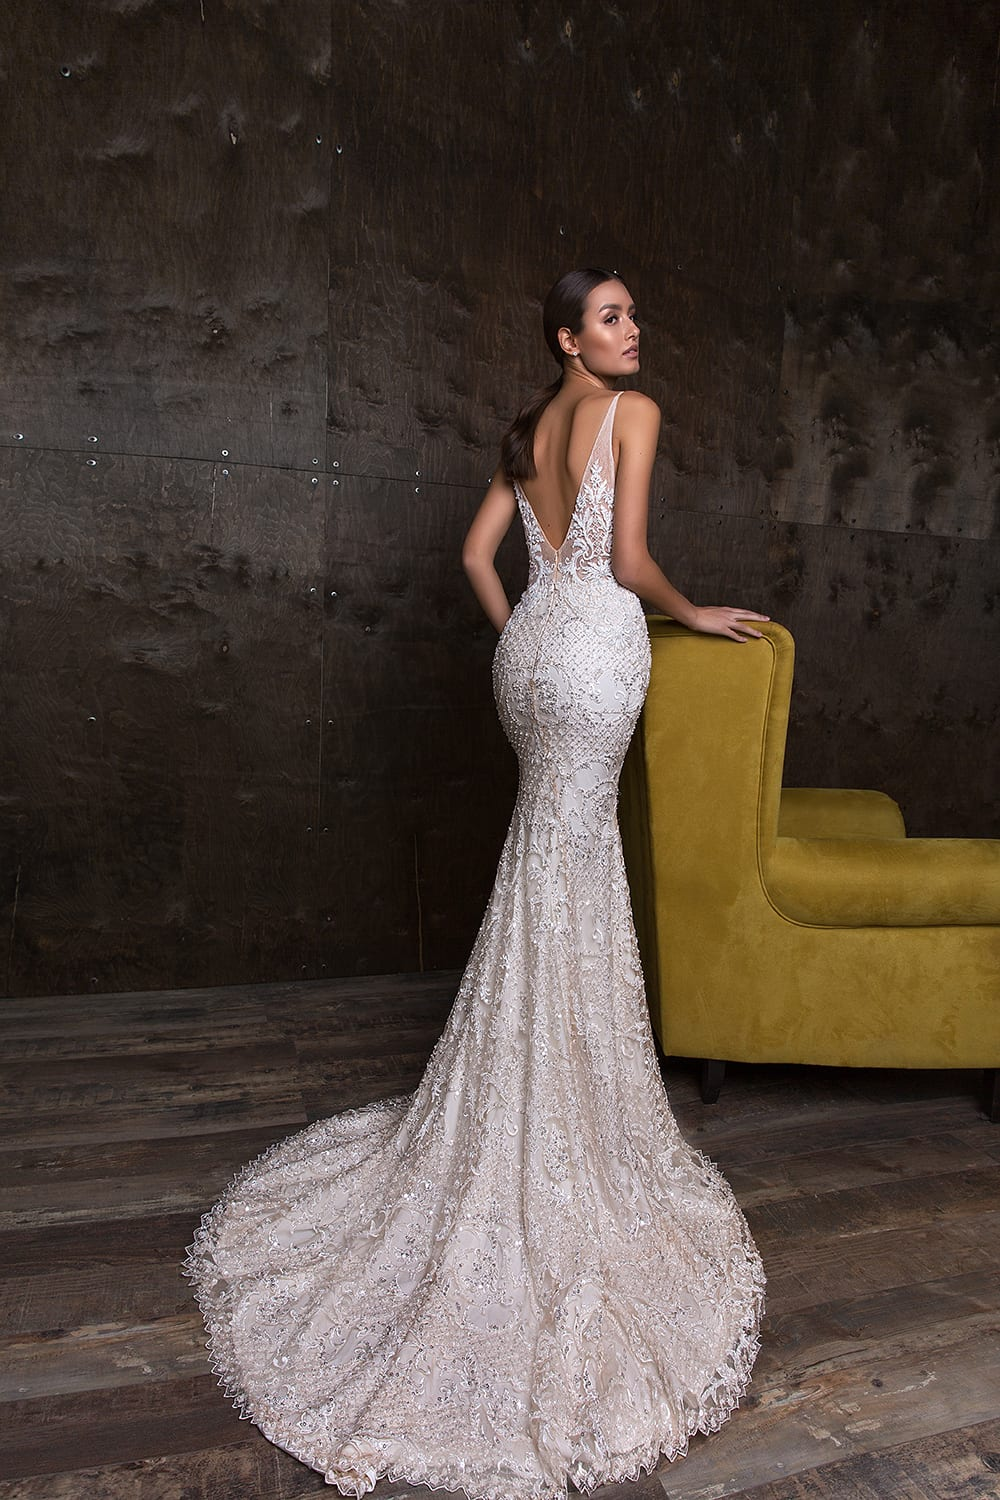 Amazing Wedding Outfit Ideas For Women